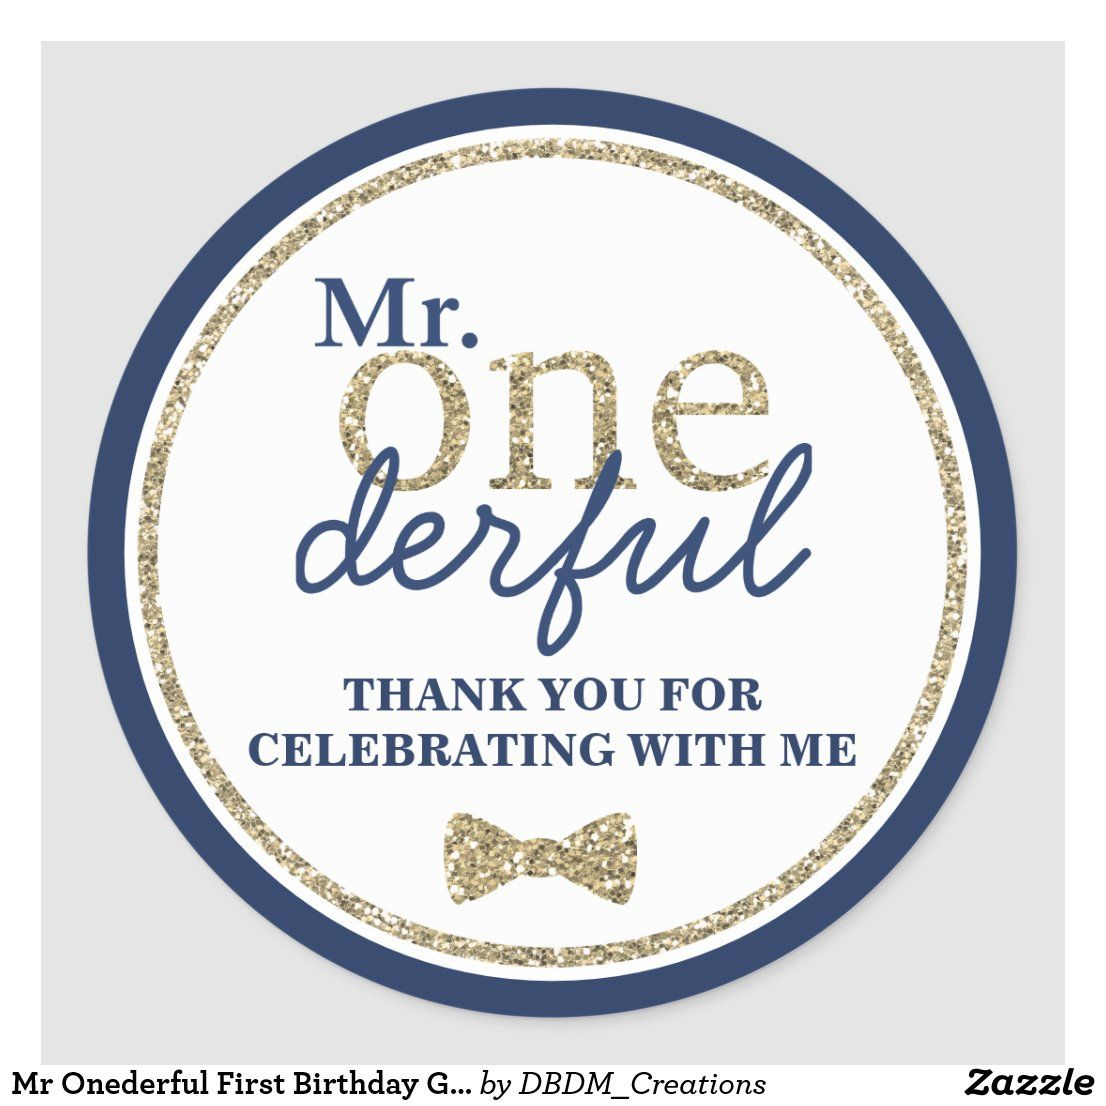 Mr onederful first birthday gold and blue classic round